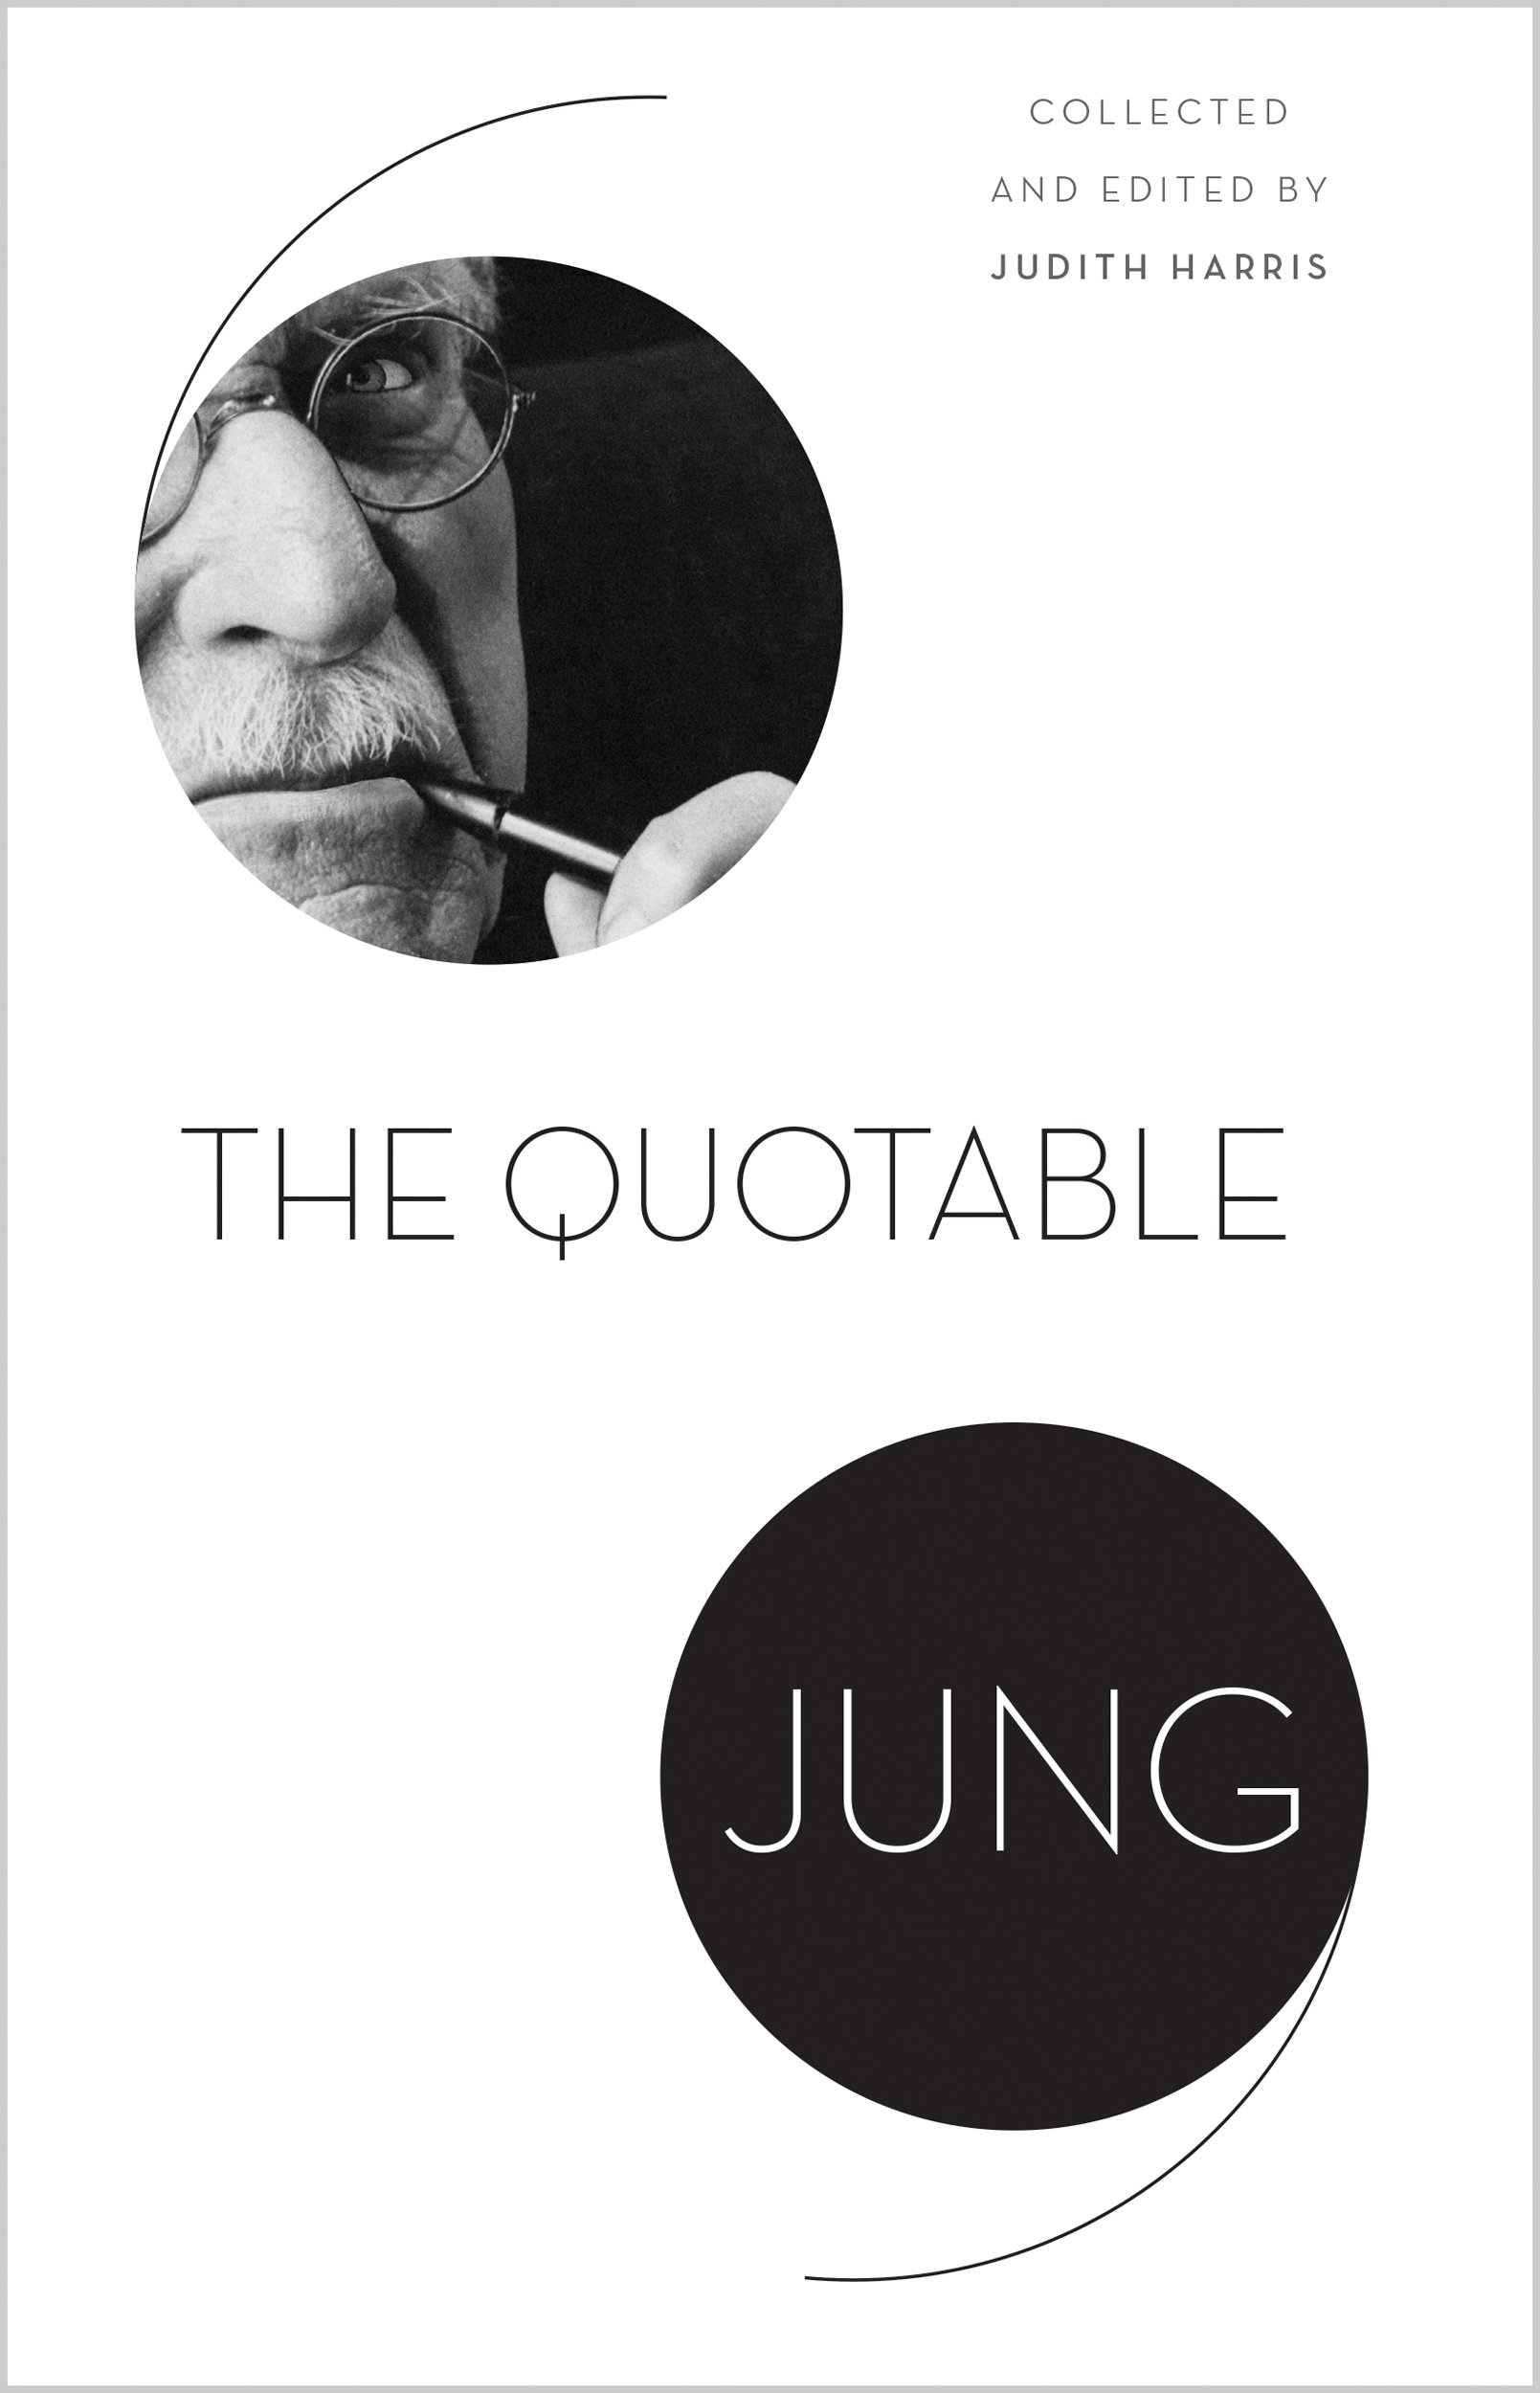 Amazon.com: The Quotable Jung (2015691155593): C. G. Jung, Judith Harris,  Tony Woolfson: Books